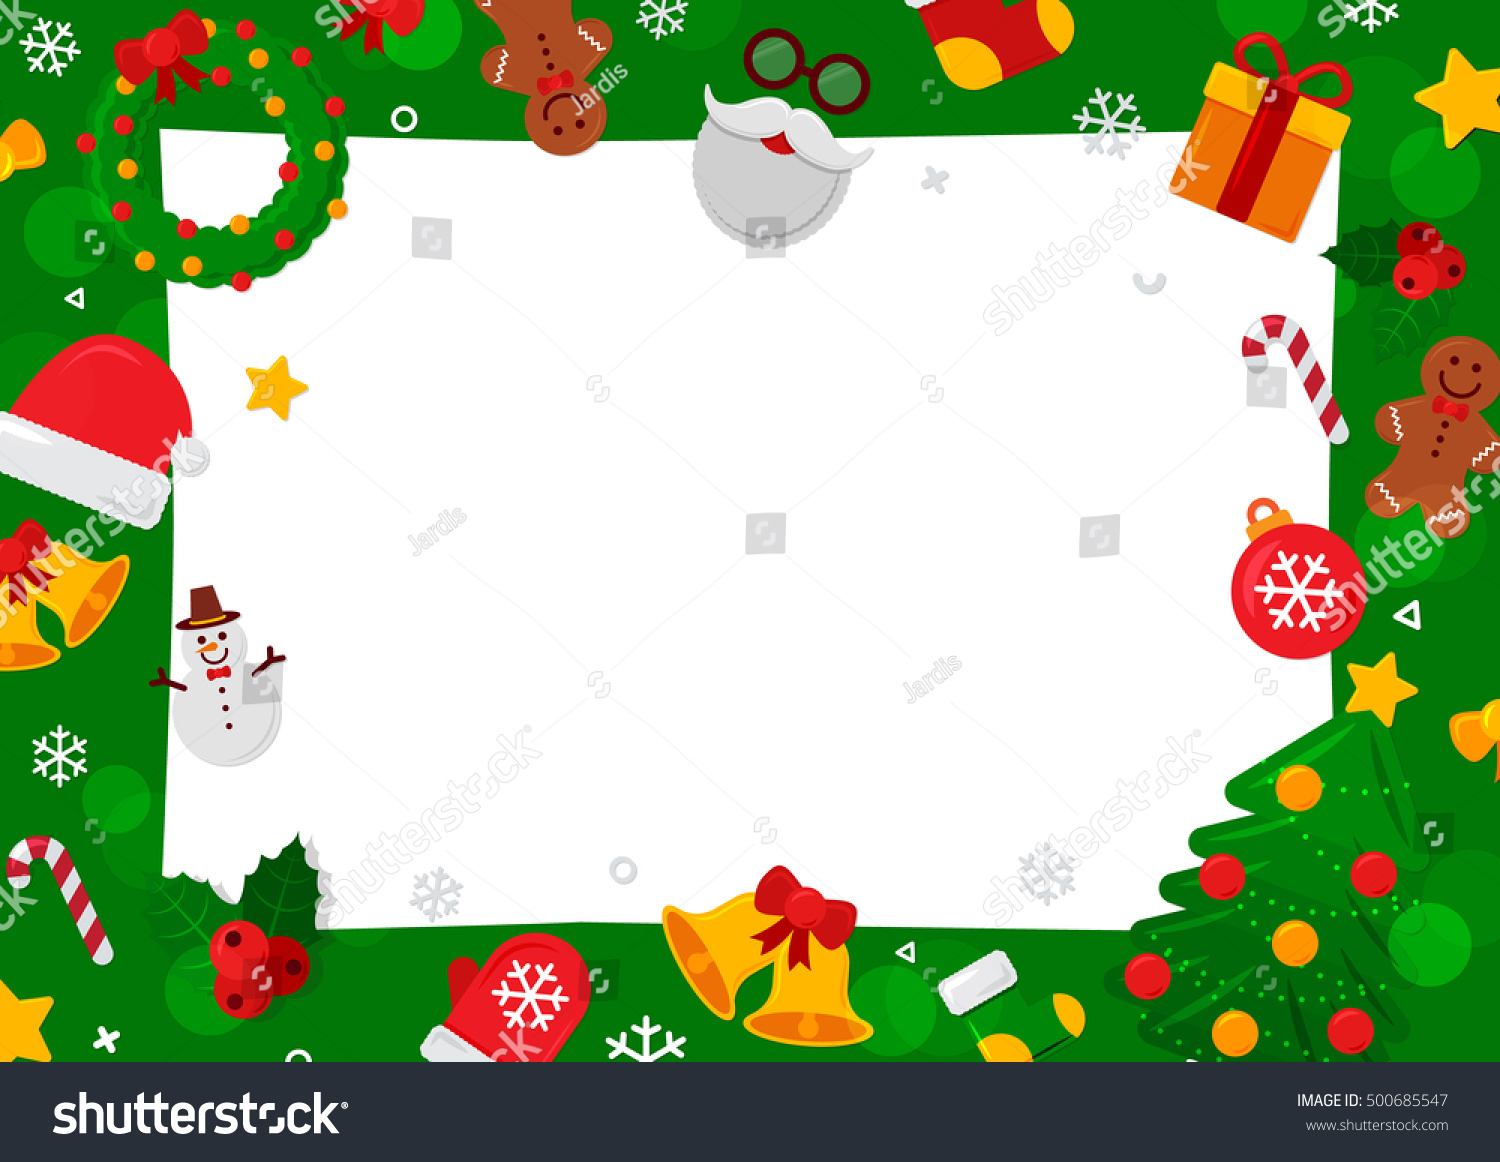 Merry Christmas Background. Flat Christmas Icons With Square Frame. Happy  New Year Concept.